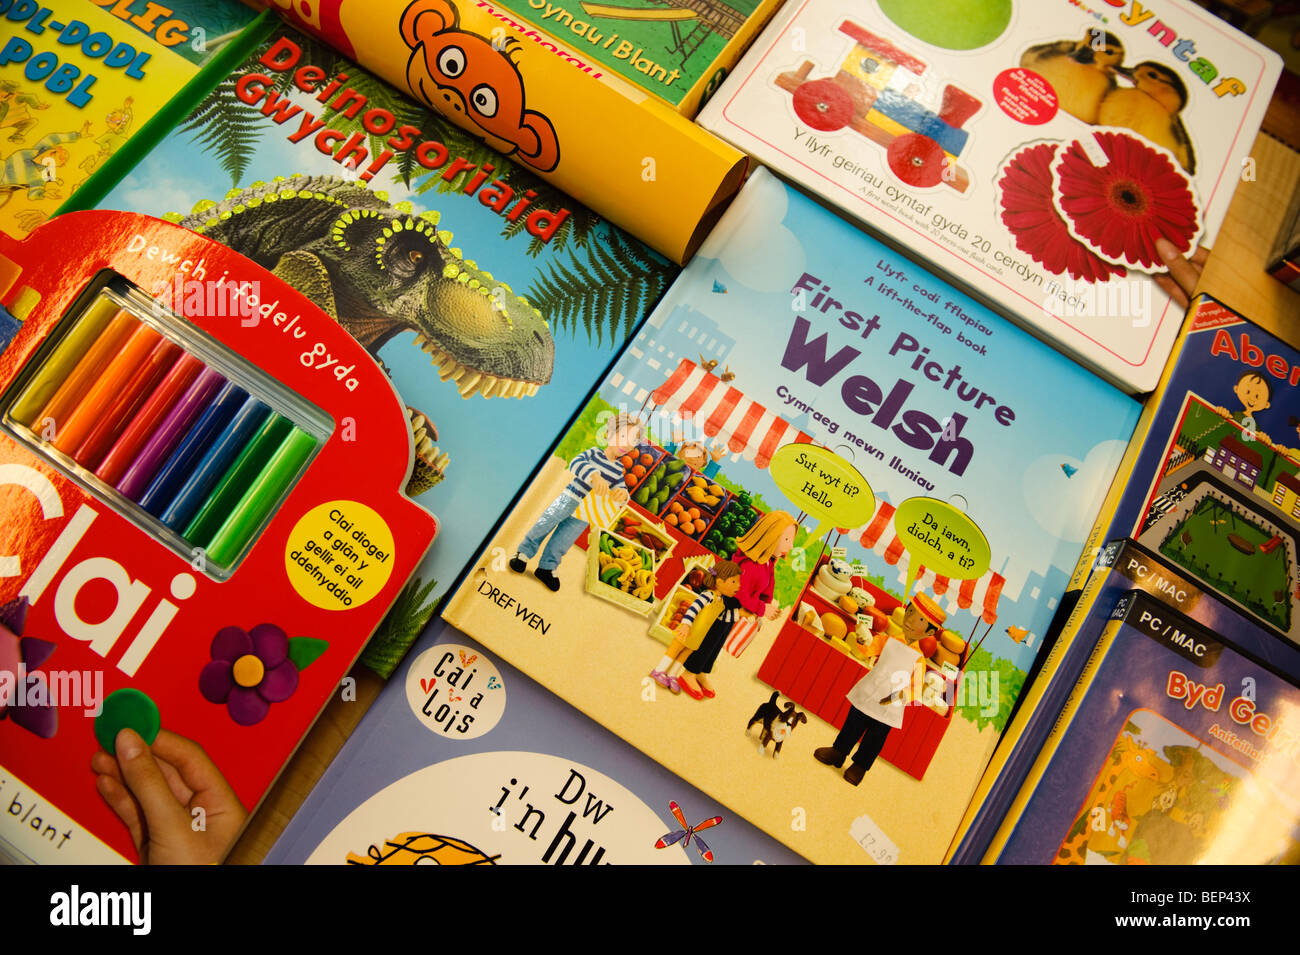 Welsh language early years learning materials - books - Stock Image